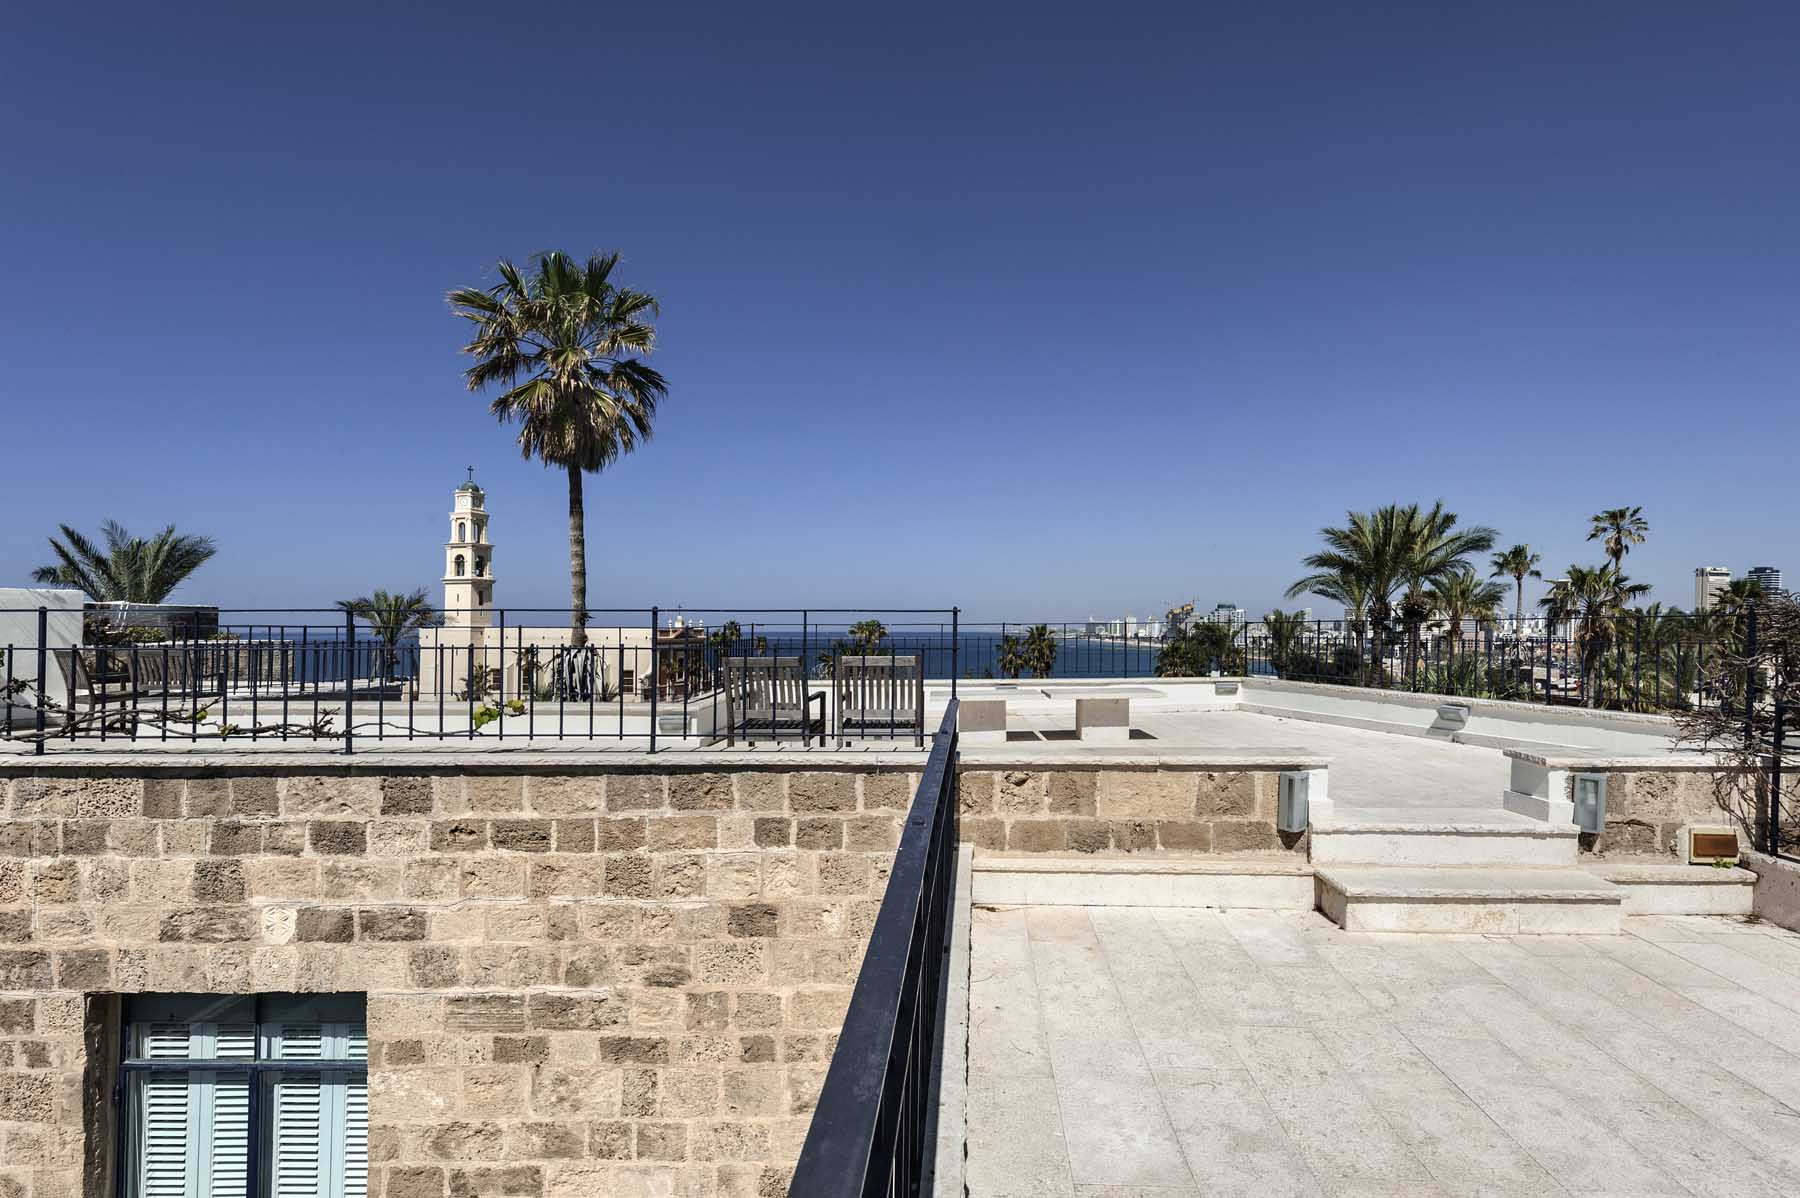 Single Family Home for Sale at Luxury Home in The Old City of Historical Jaffa Jaffa, Israel Israel